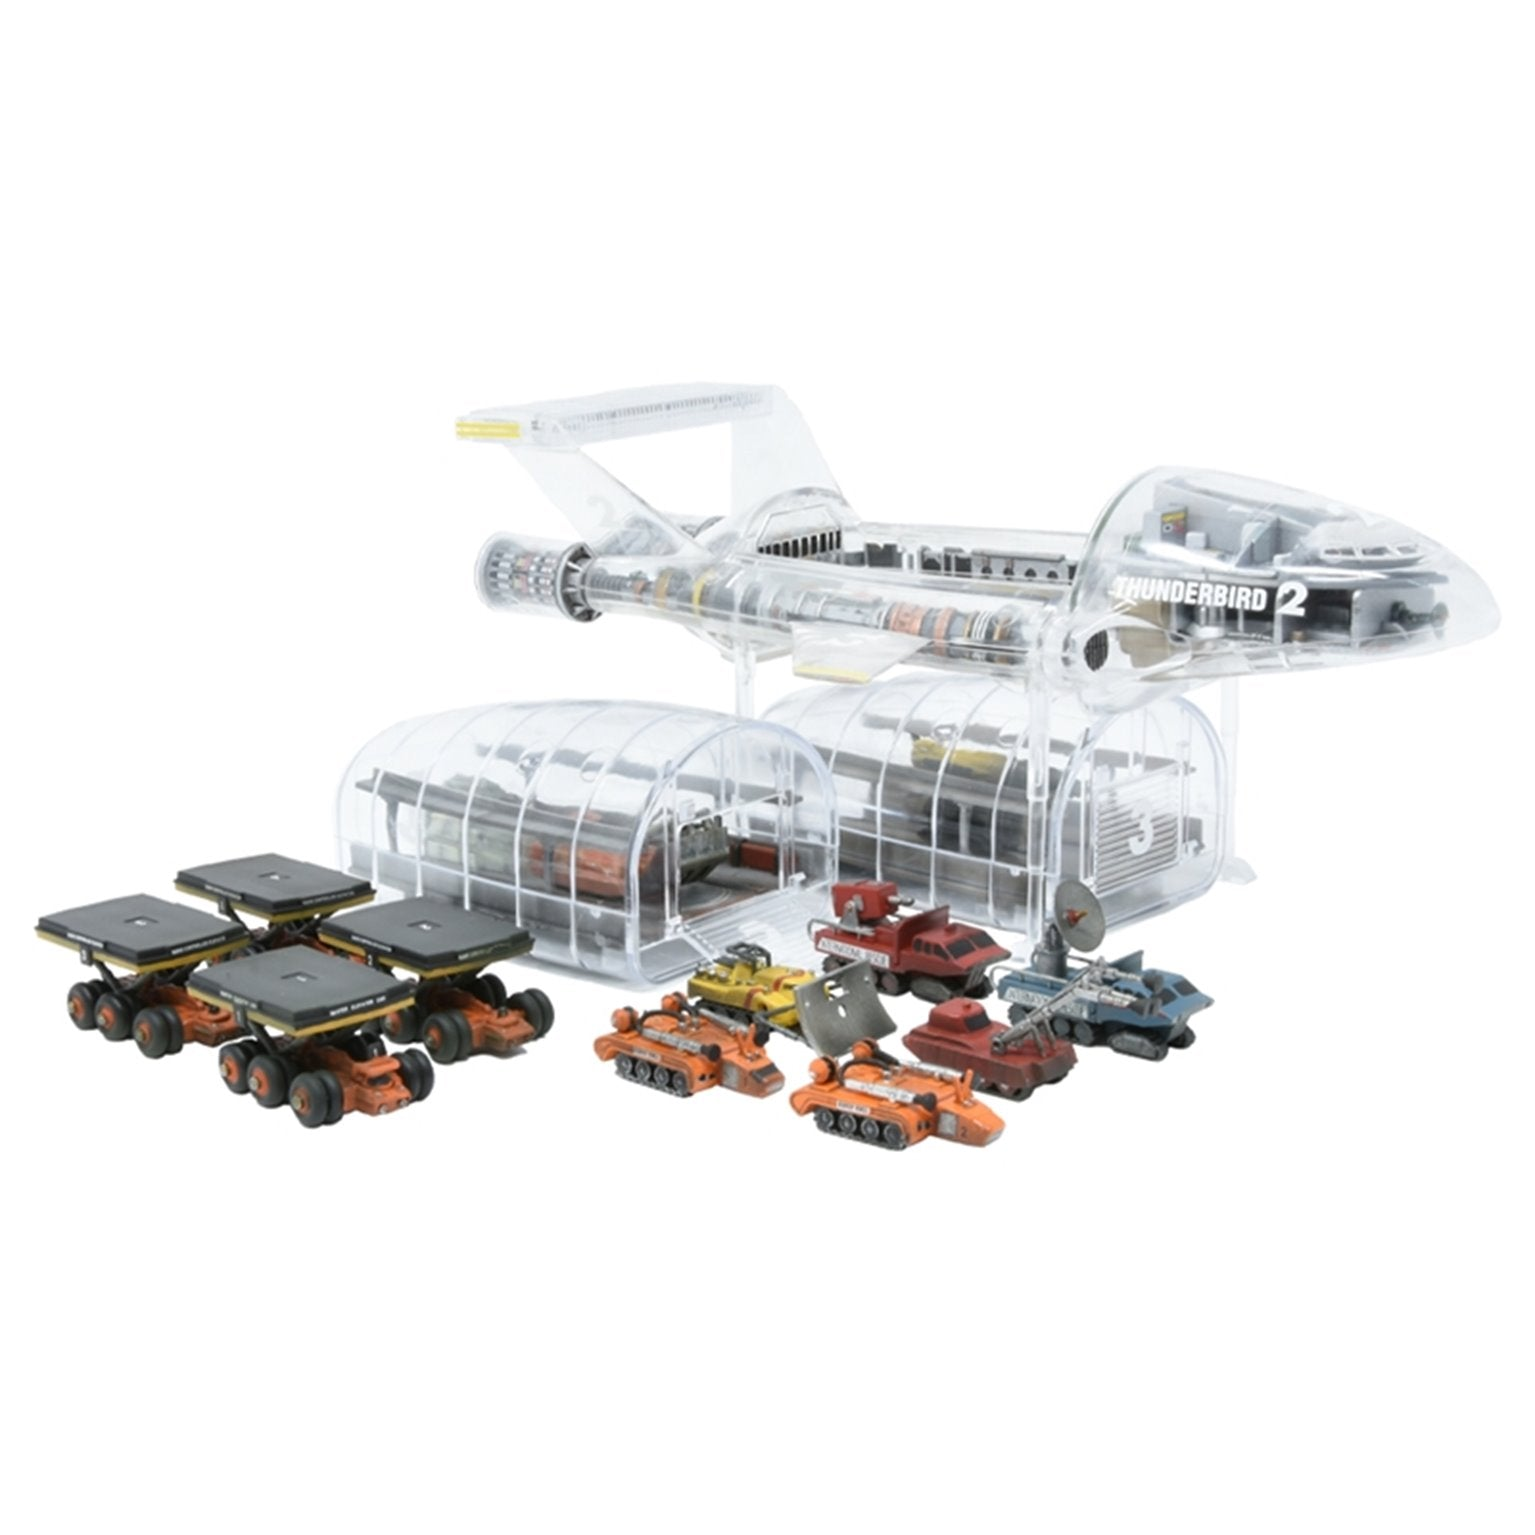 1:350 Transparent Thunderbird 2 Model Kit